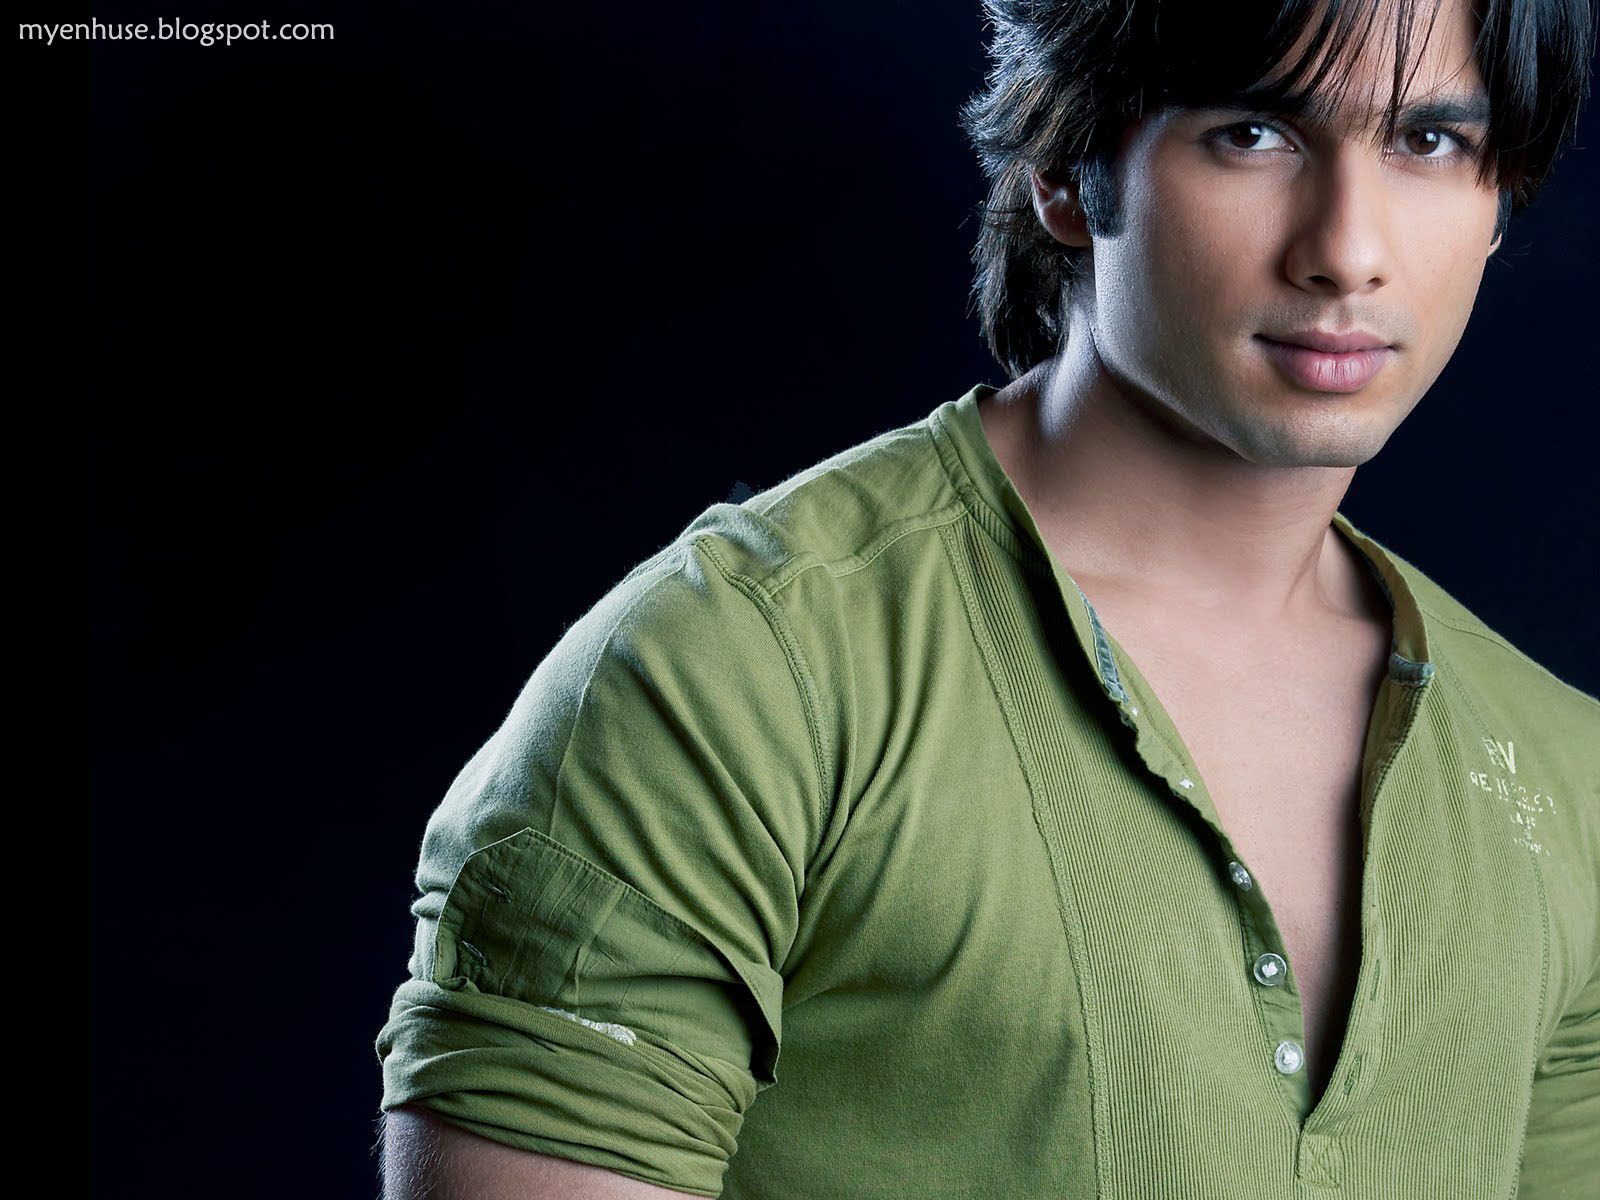 shahid kapoor in green tshirt